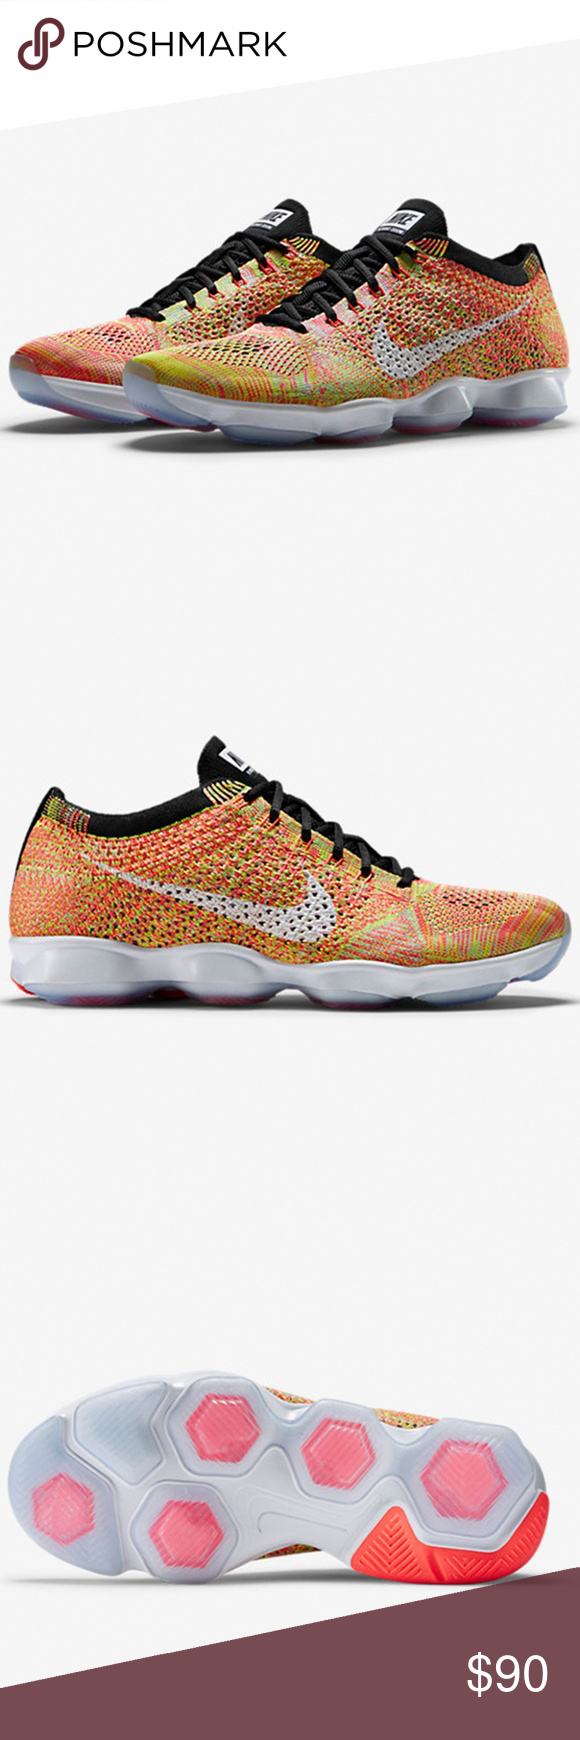 Nike Shoes | Nike Flyknit Zoom Agility Hot Lava Runner Shoes